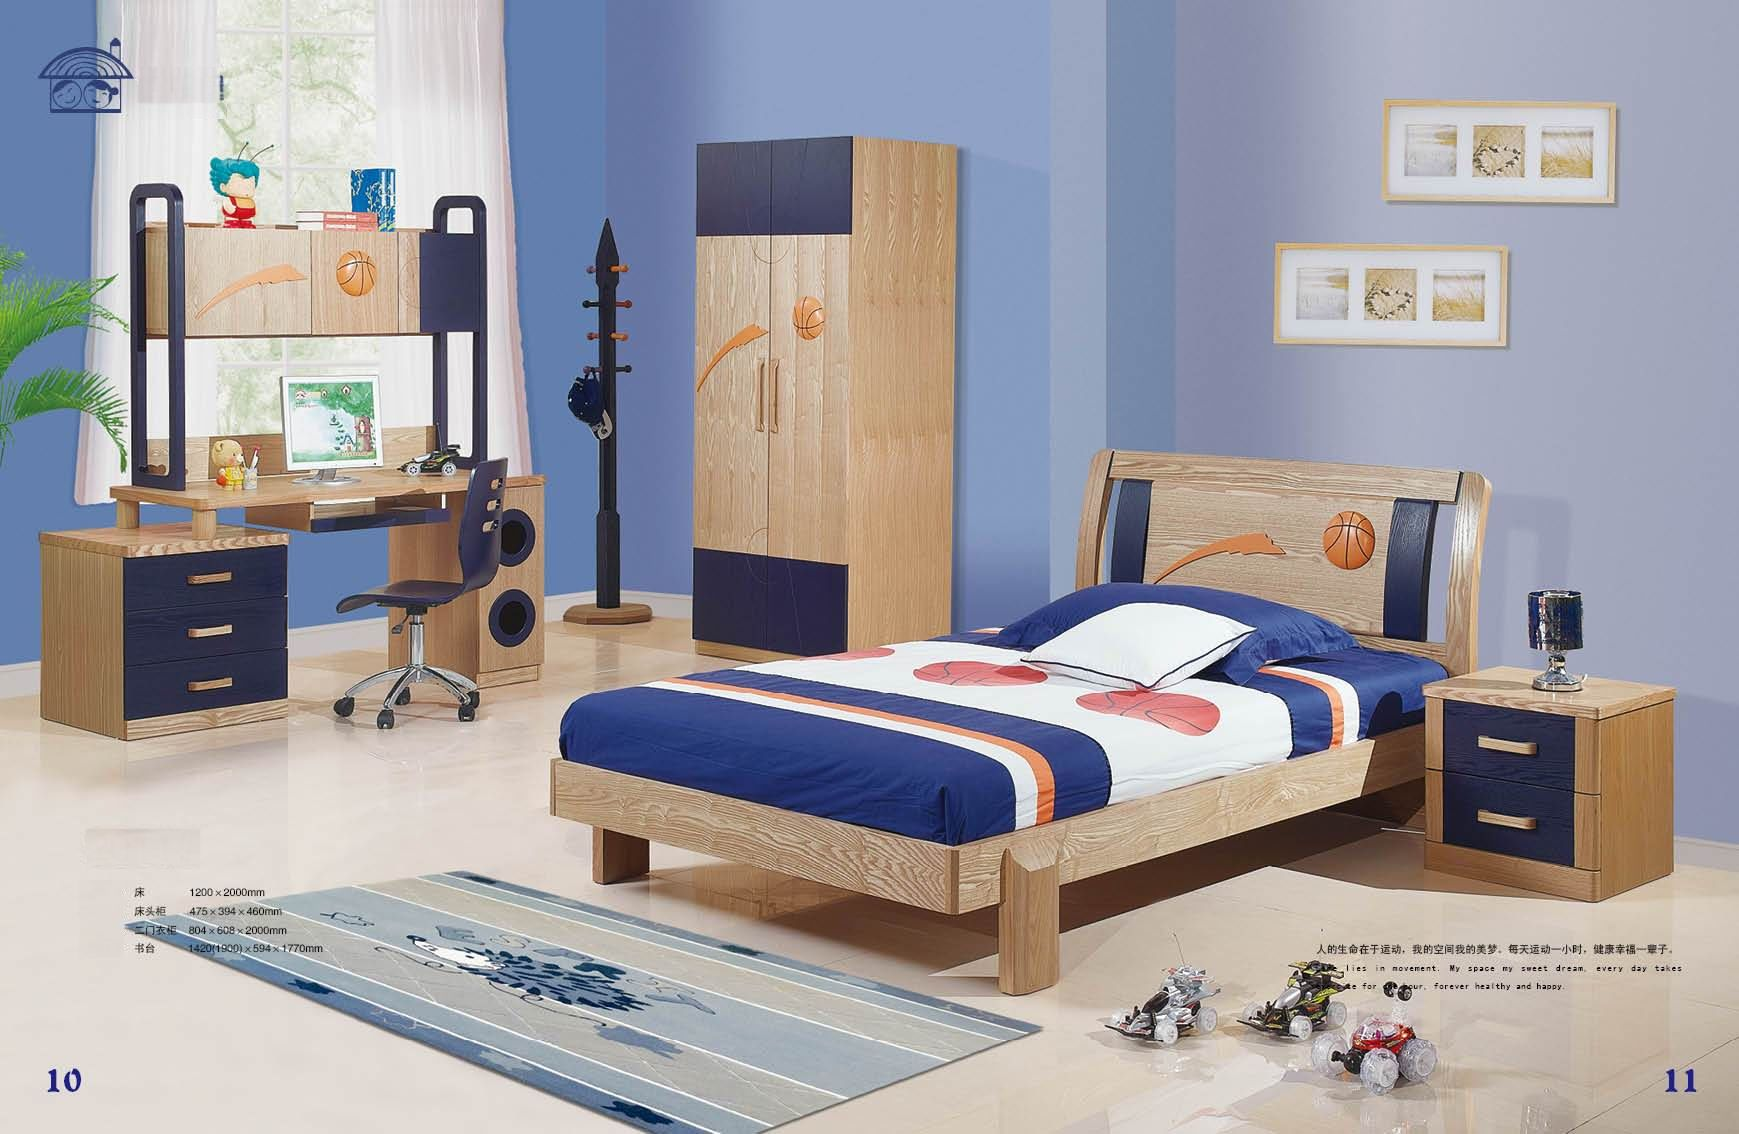 Kids Bedroom Model youth bedroom furniture | kids bedroom set (jkd-20120#) - china